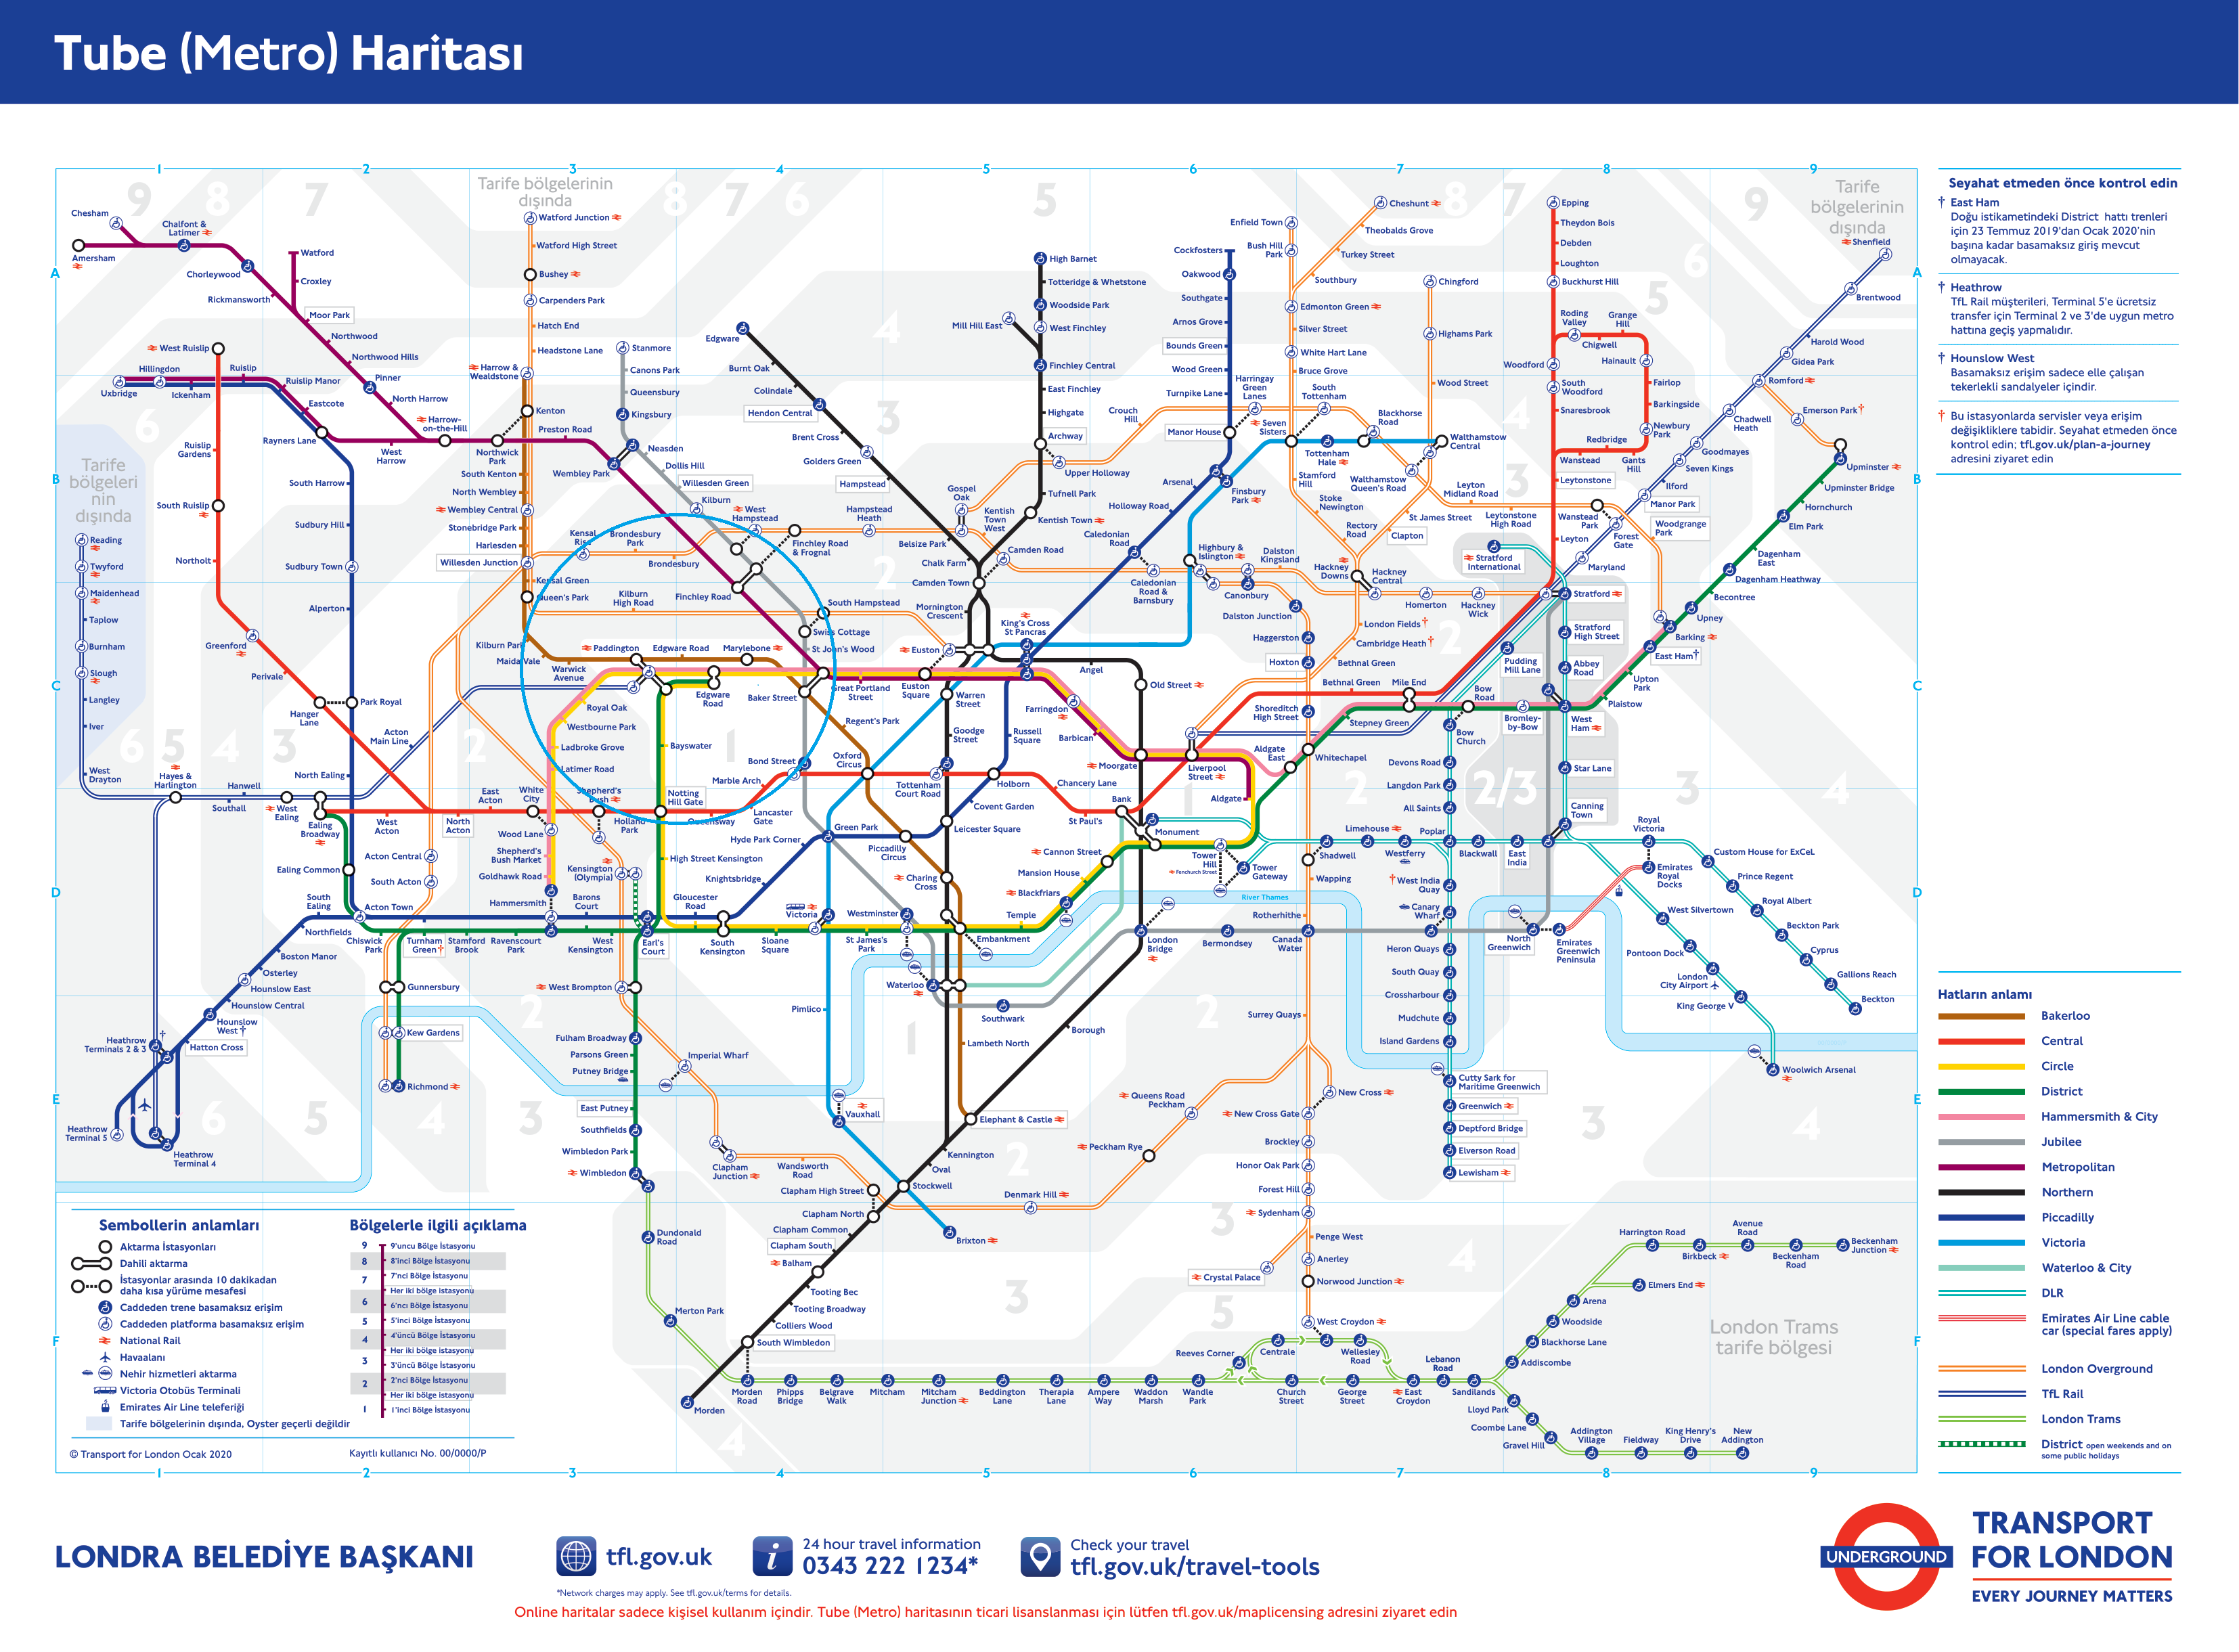 marylebone-paddington transportmap2